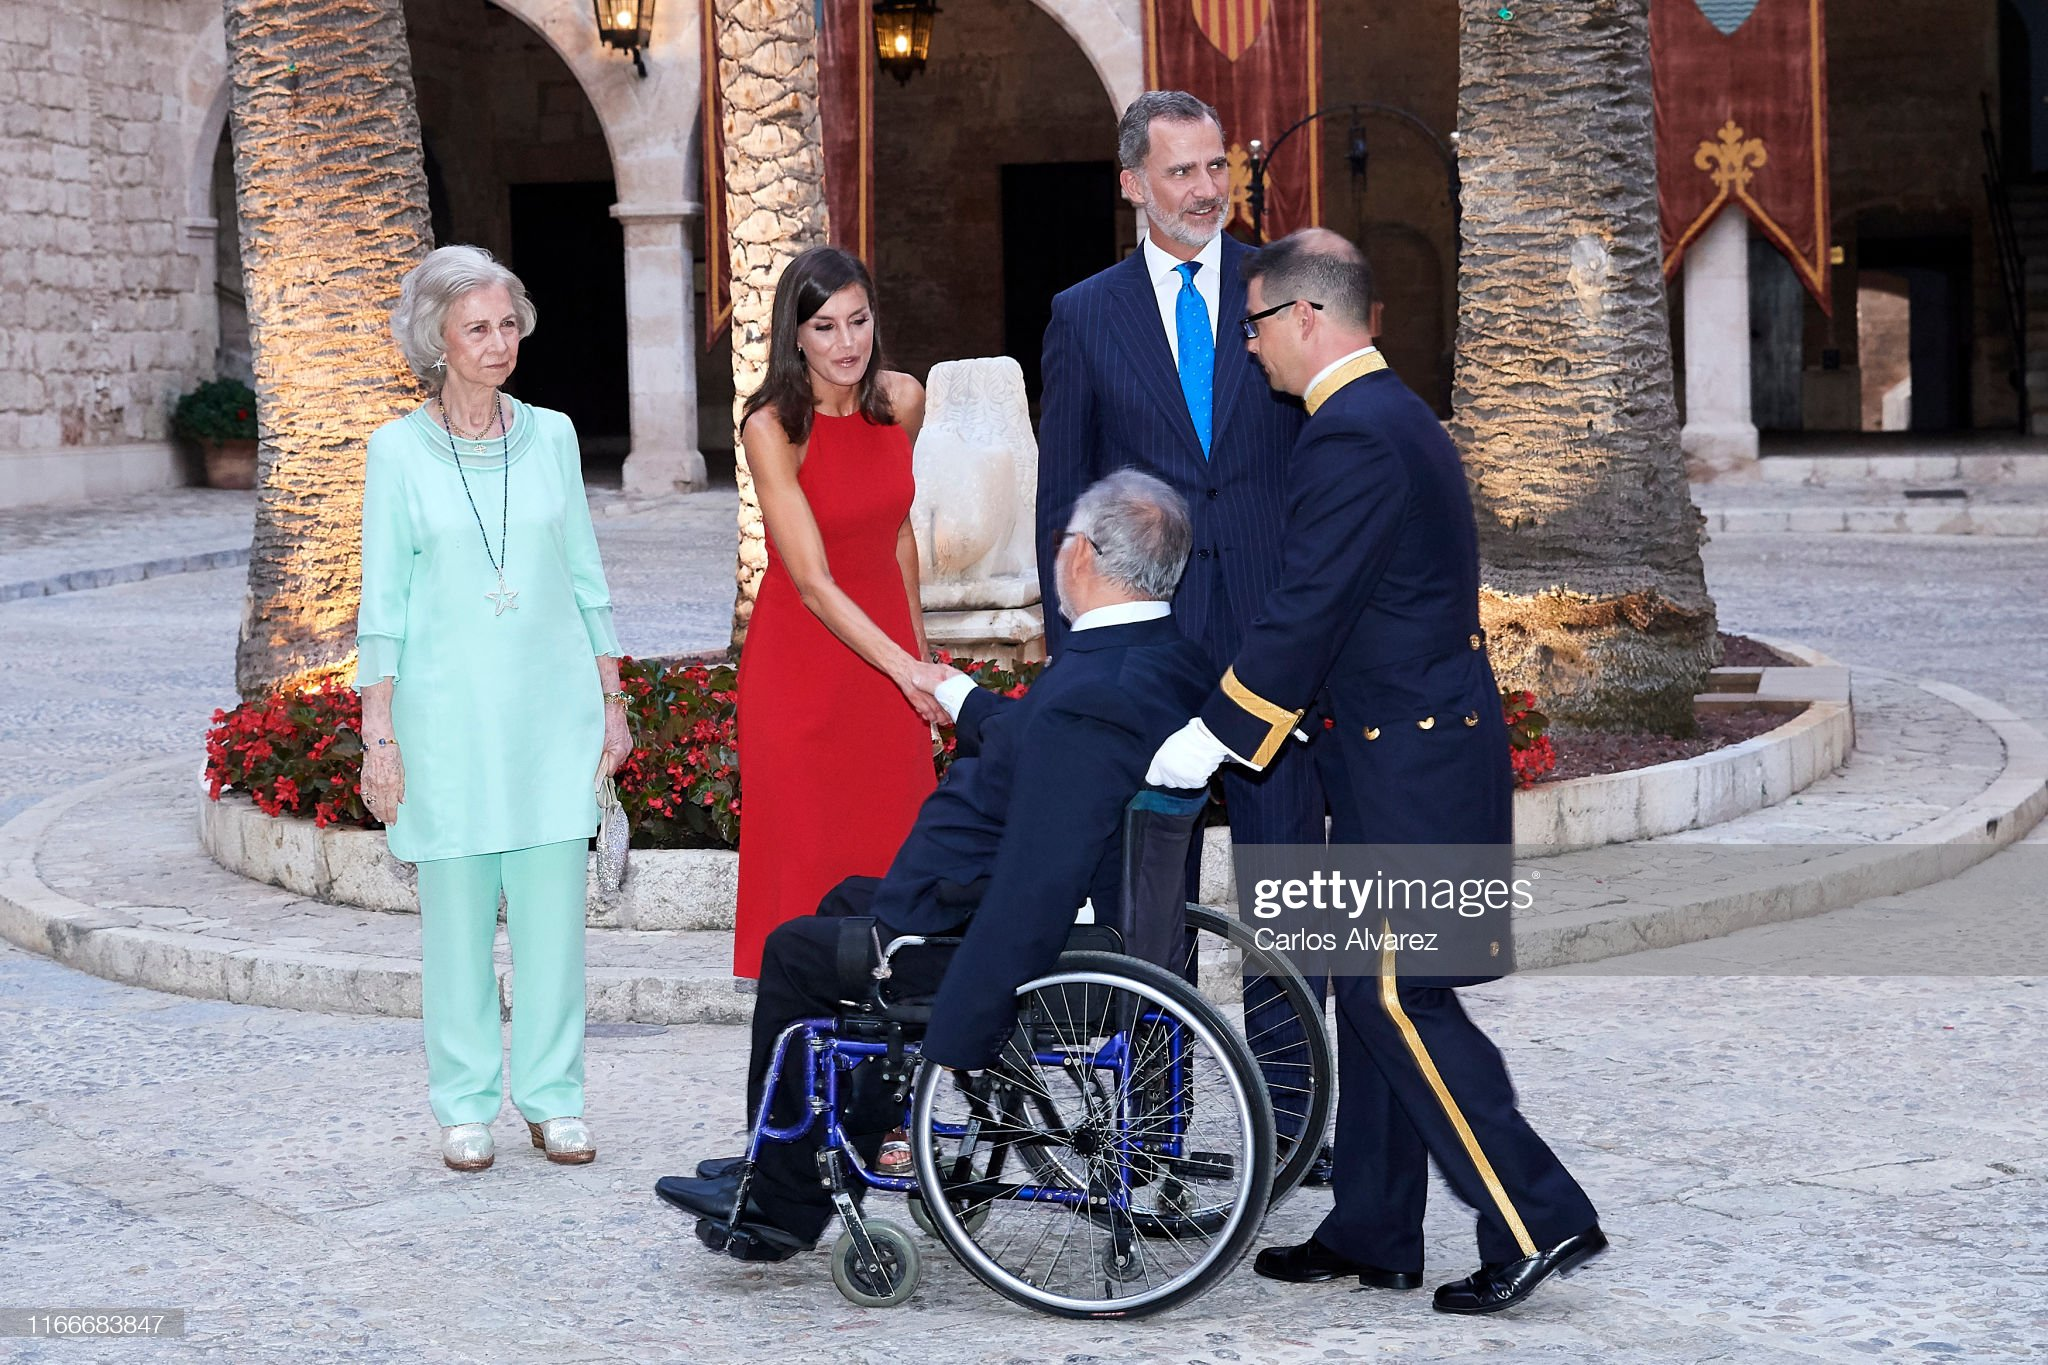 https://media.gettyimages.com/photos/king-felipe-vi-of-spain-queen-letizia-of-spain-and-queen-sofia-host-a-picture-id1166683847?s=2048x2048